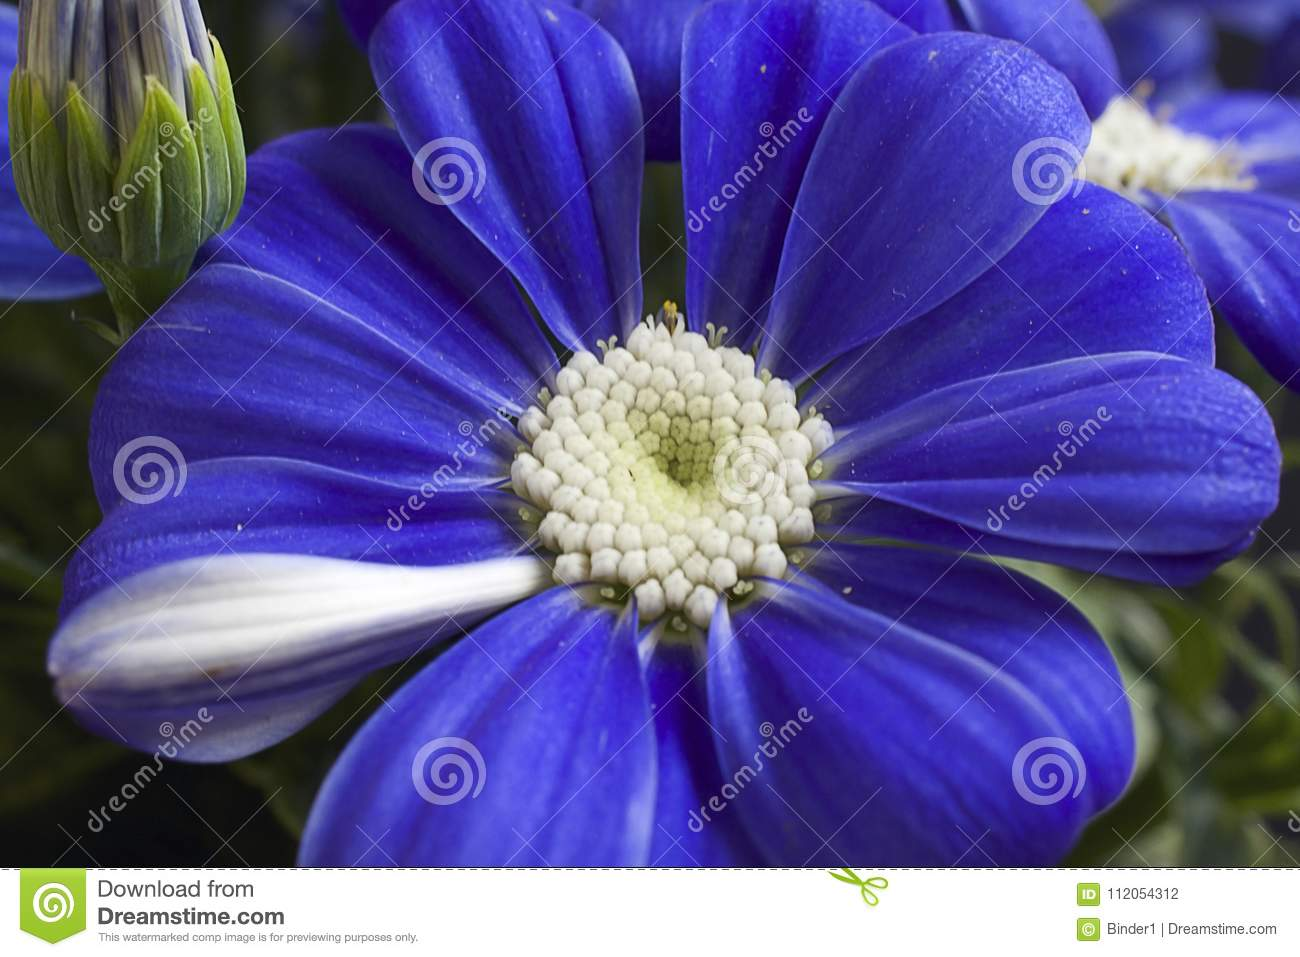 Very pretty blue spring flower close up in my garden stock photo download very pretty blue spring flower close up in my garden stock photo image of mightylinksfo